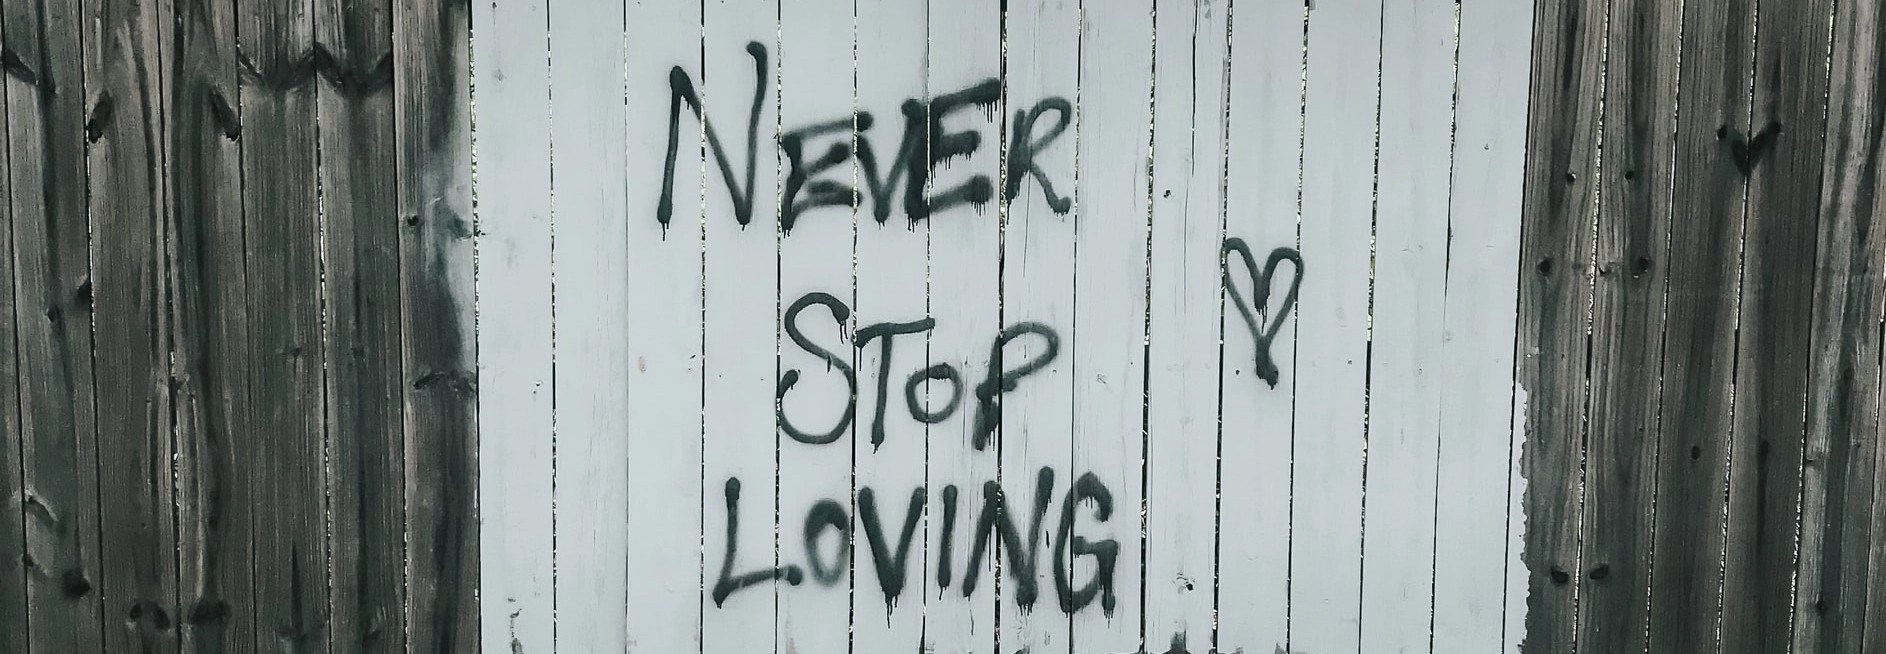 Love can be always and never